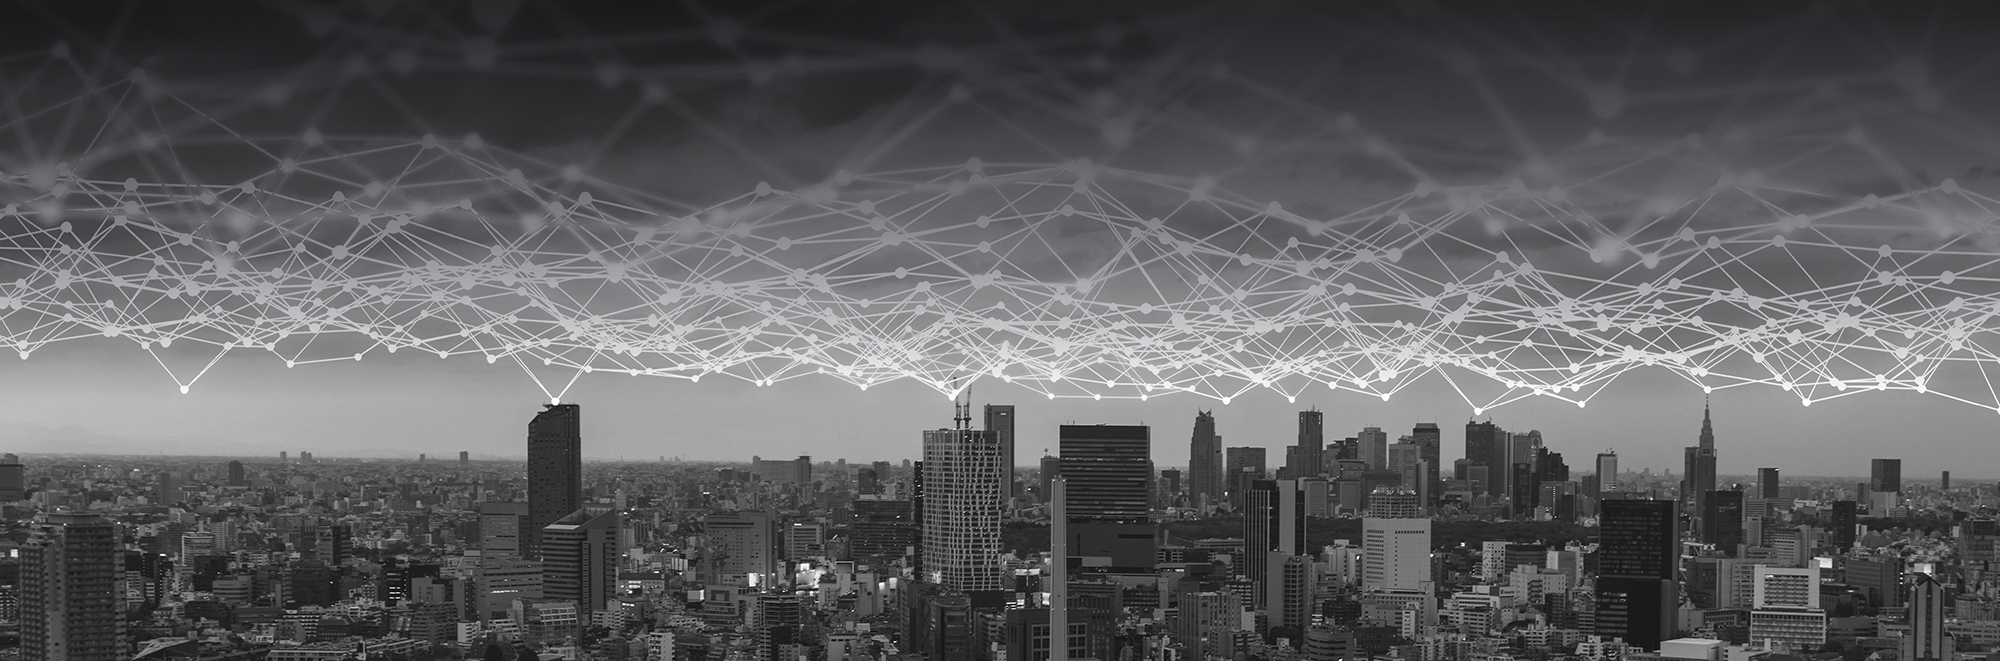 interconnected network above a city landscape alluding to secure and easy access to markets and ecosystems